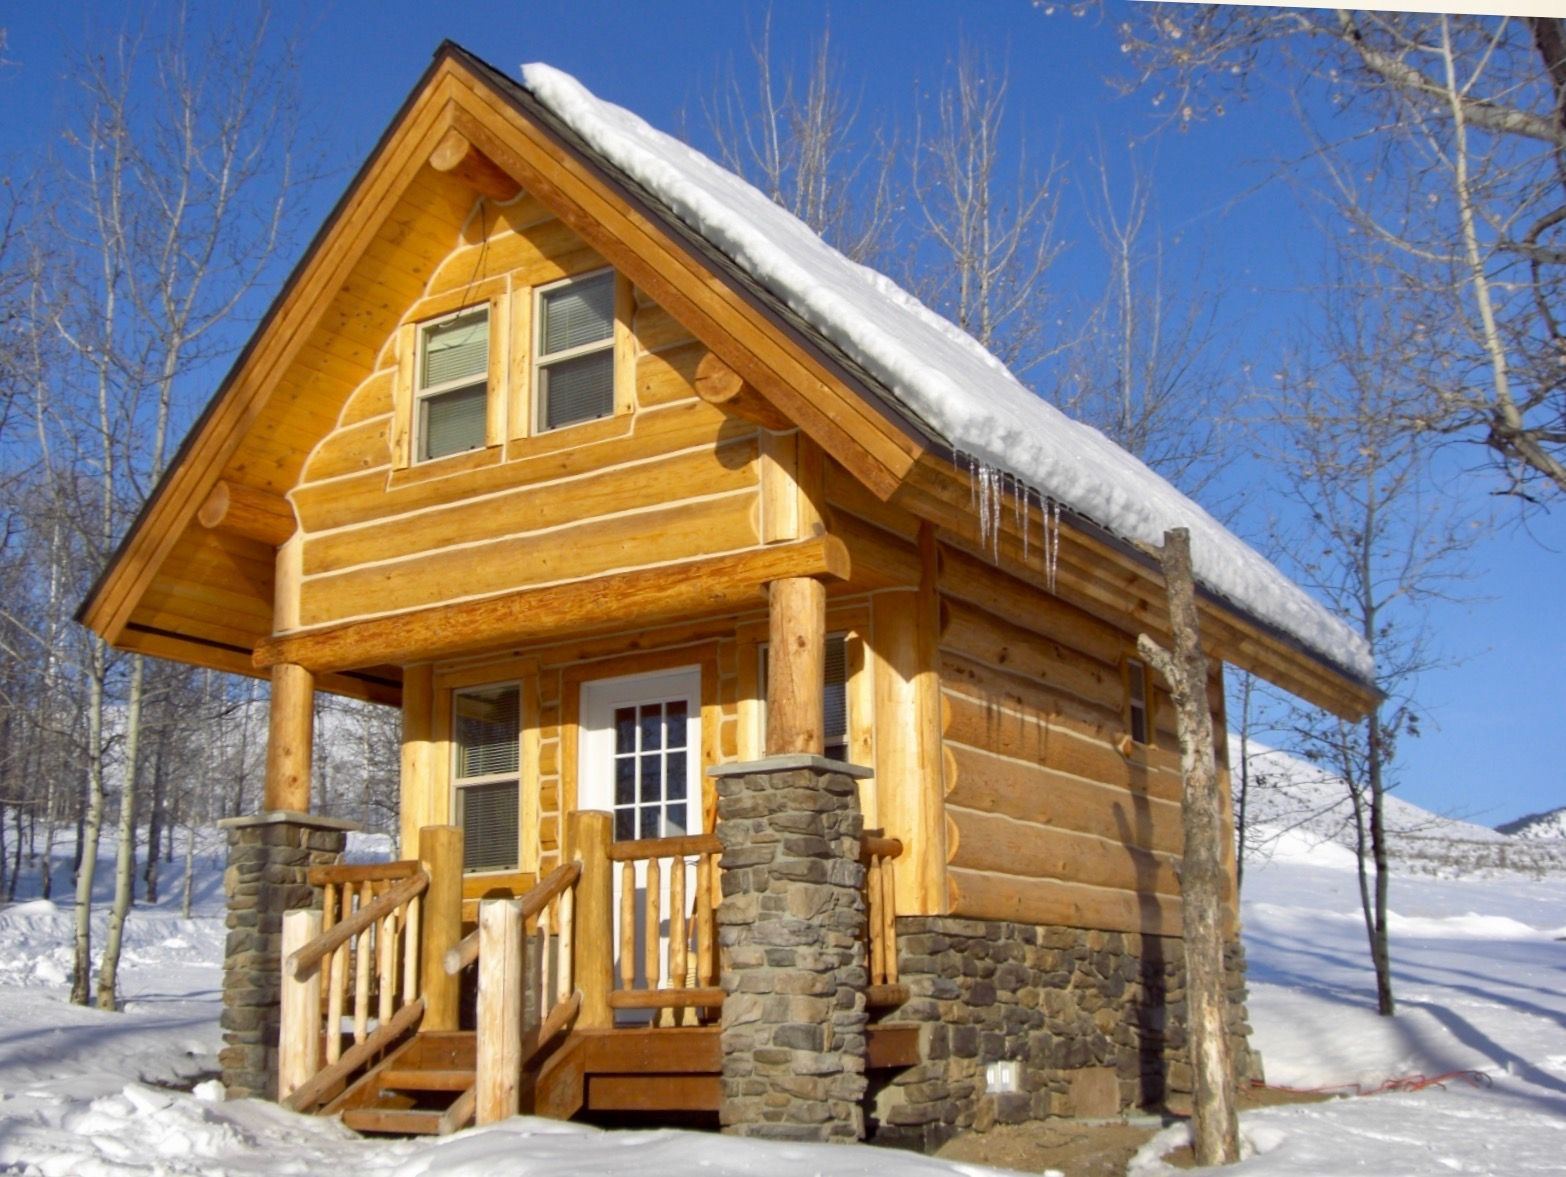 Sweet Tiny Log Cabin, Perfect For A Rustic Retreat! This One Is In Winthrop